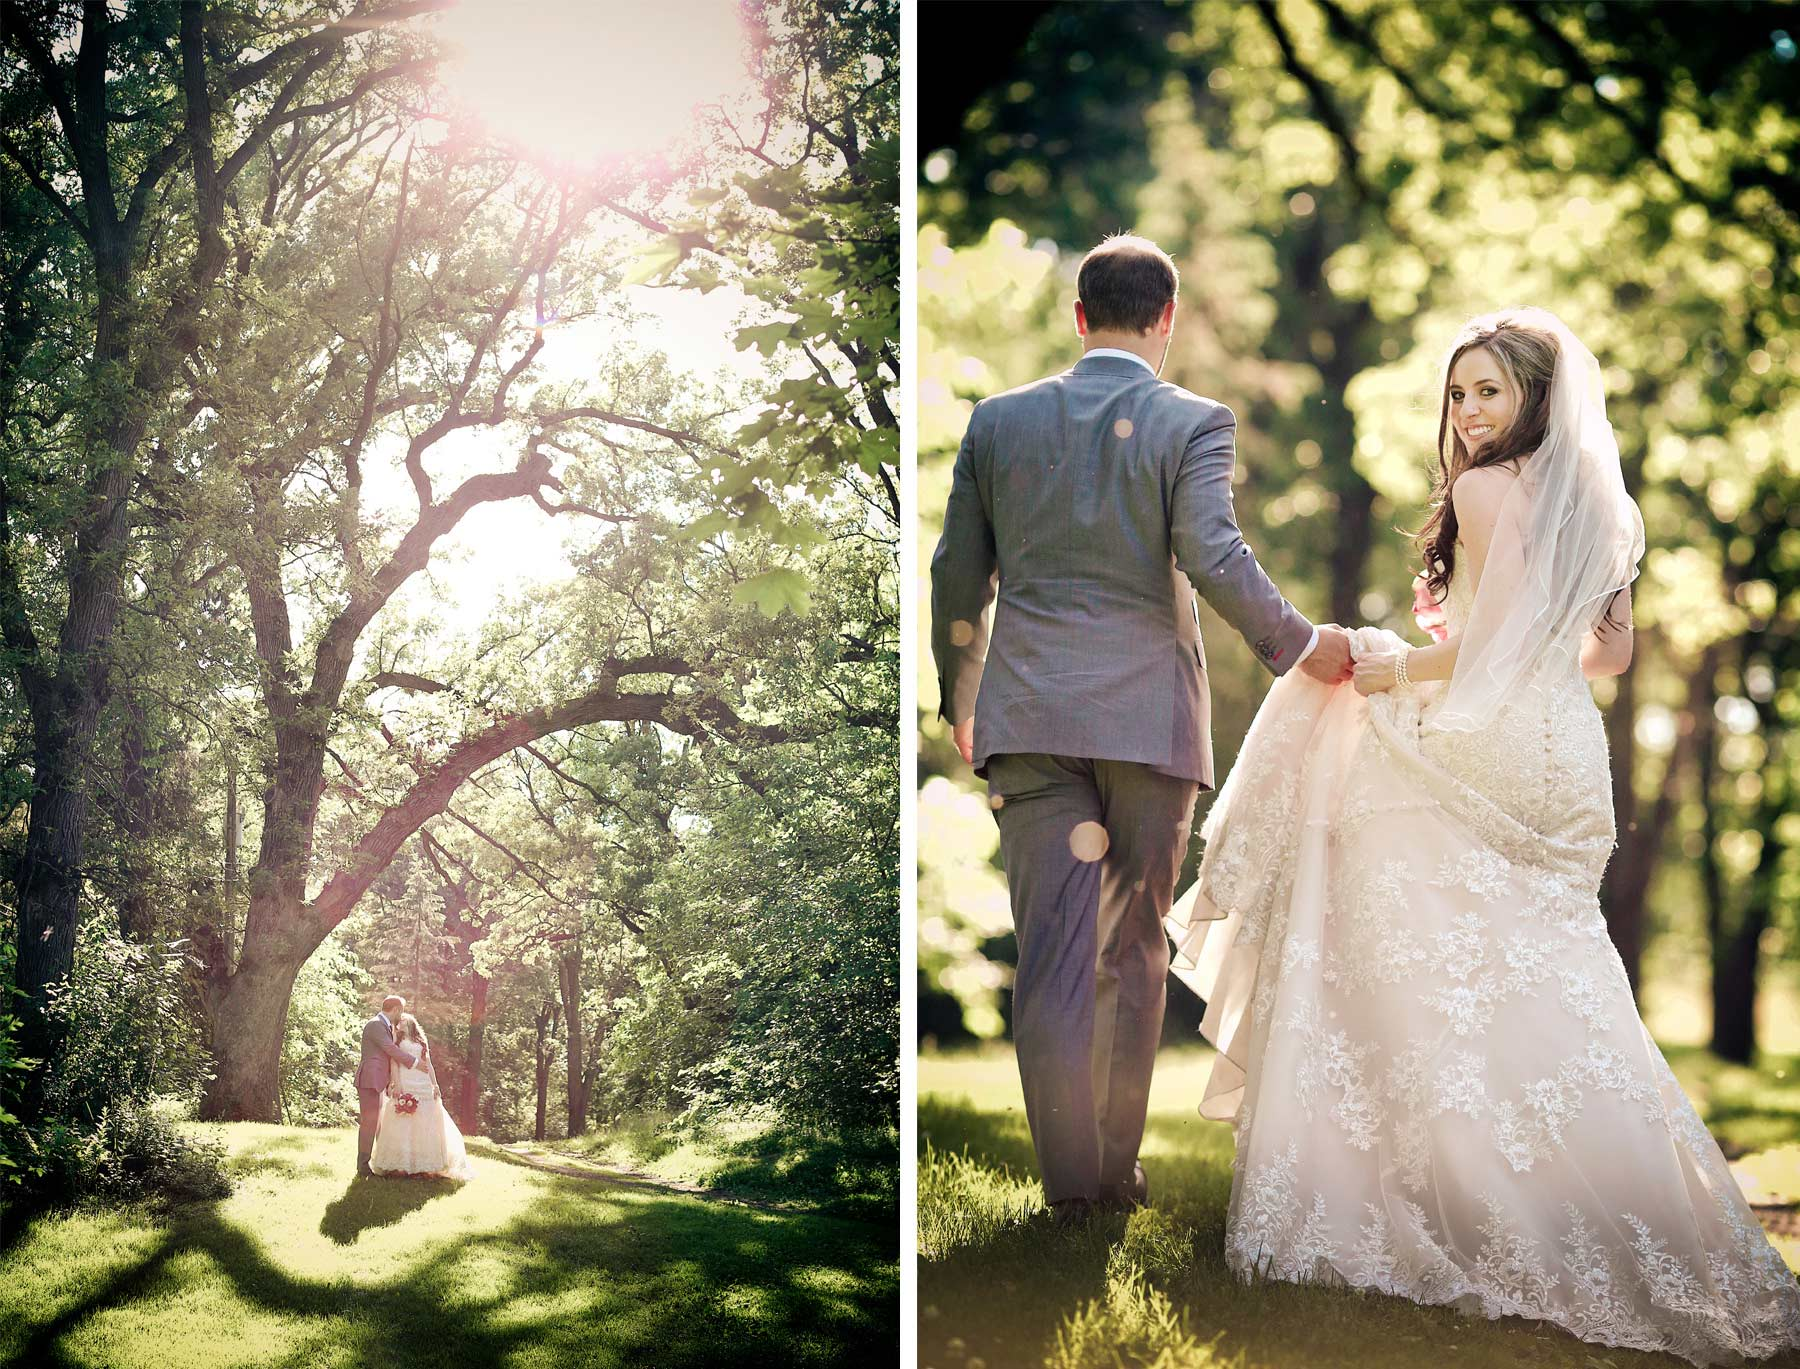 20-Minneapolis-Minnesota-Wedding-Photographer-by-Andrew-Vick-Photography-Summer-Kiss-Embrace-Dress-Woods-Bride-Groom-Natalie-and-Andrew.jpg